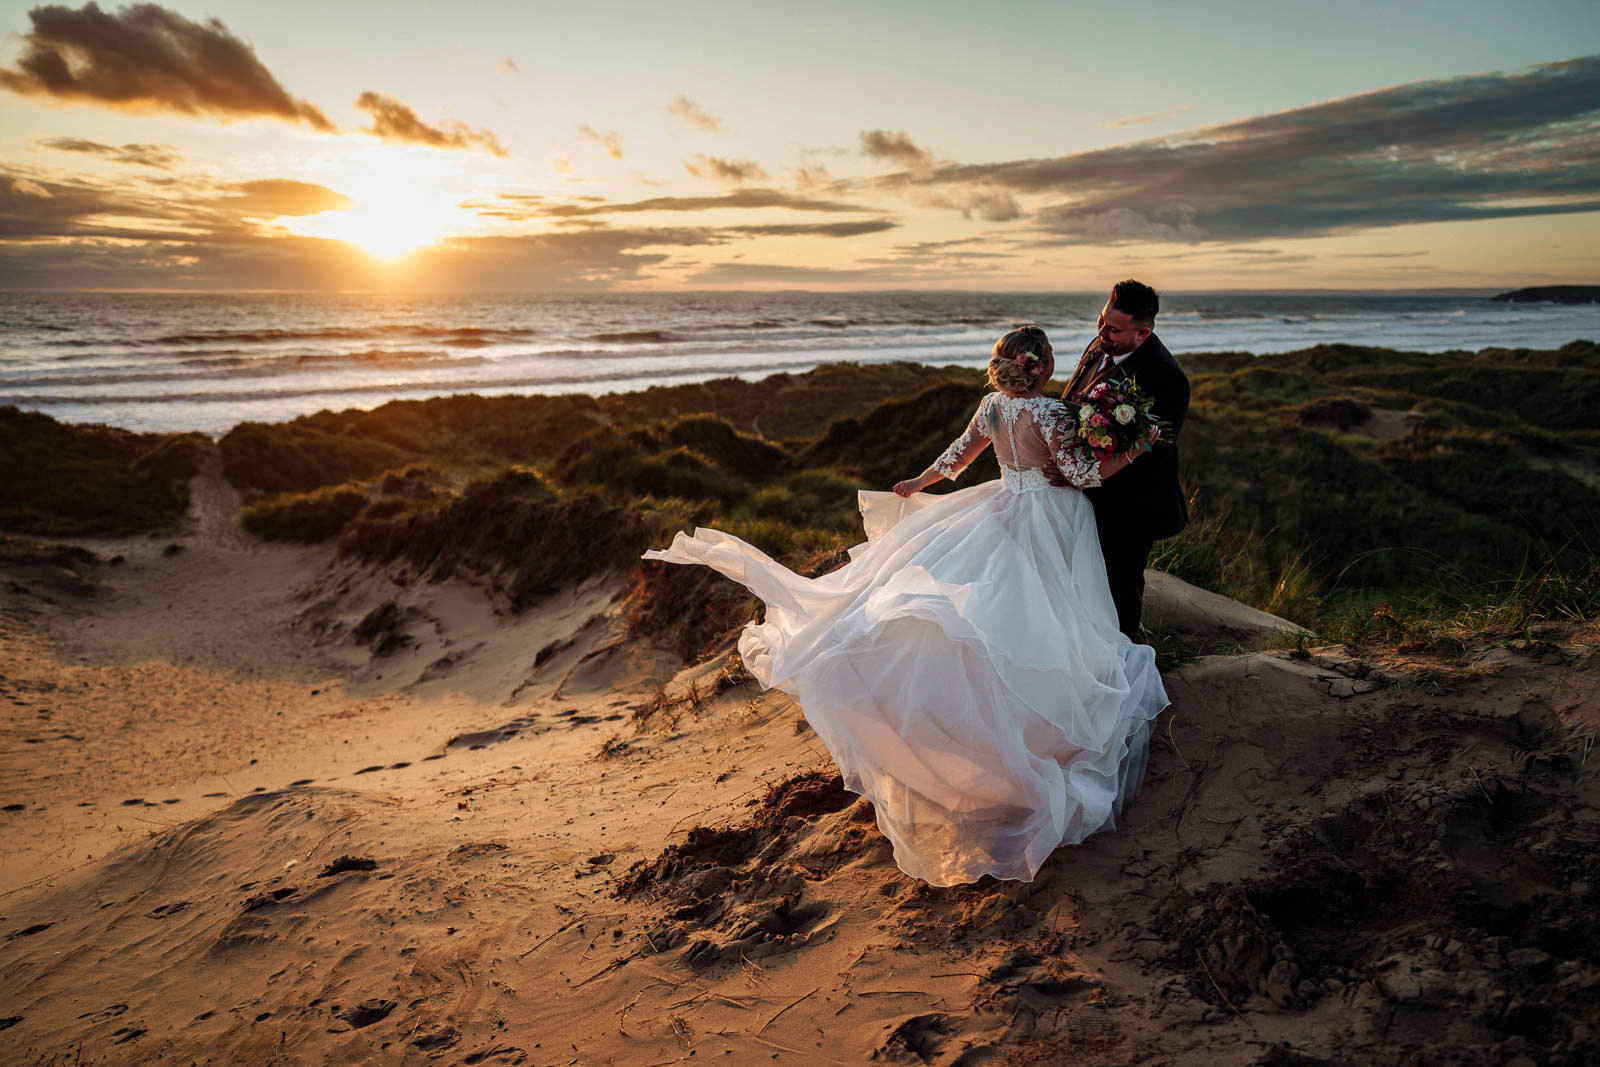 Bride and groom watch the sunset together at Llangennith beach, Gower, South Wales